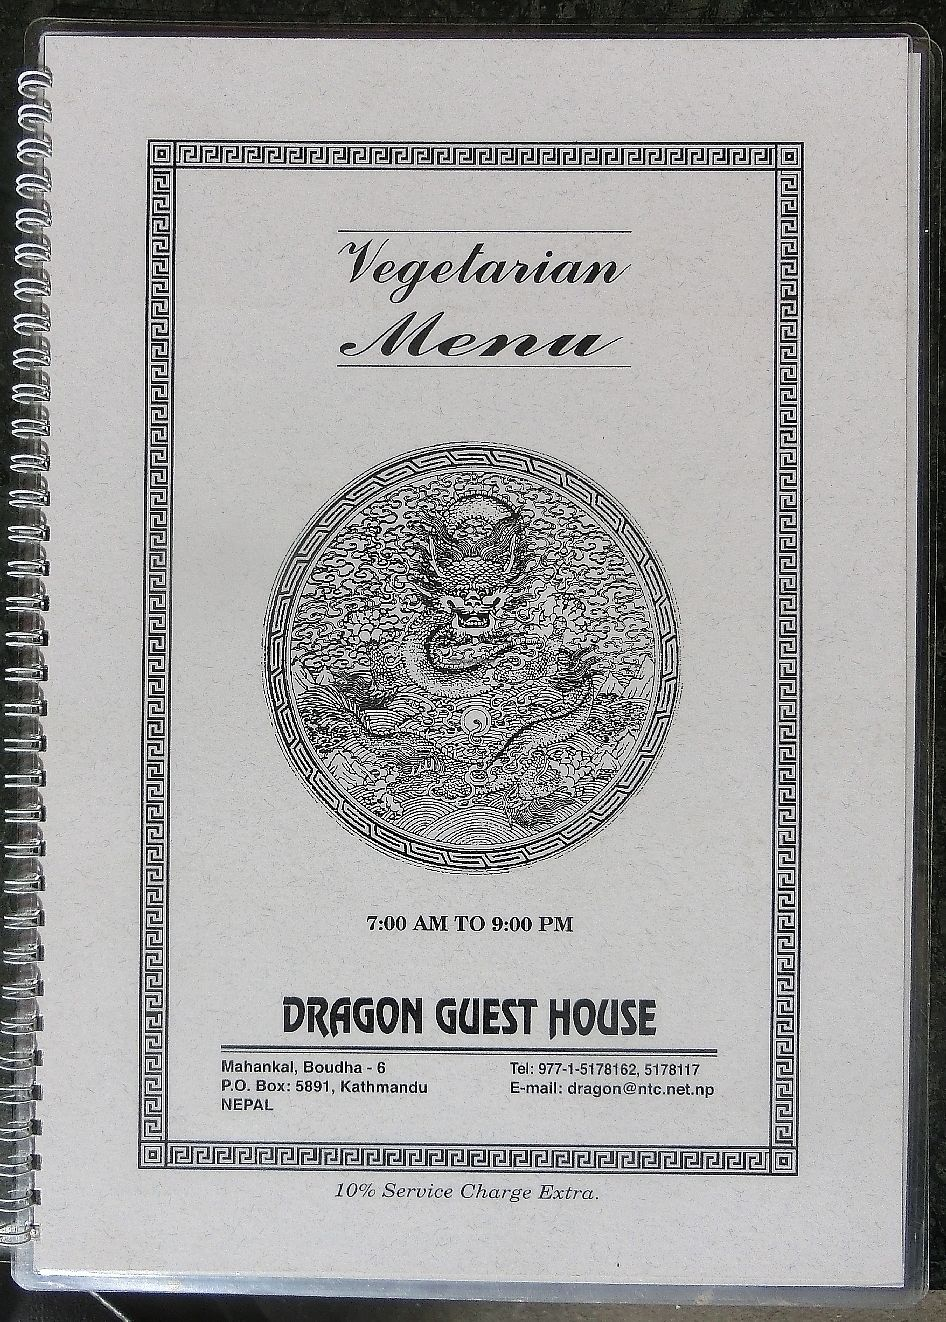 """Photo of Dragon Guest House Vegetarian Restaurant  by <a href=""""/members/profile/Canamon"""">Canamon</a> <br/>Menu 1 <br/> January 20, 2018  - <a href='/contact/abuse/image/109910/348783'>Report</a>"""